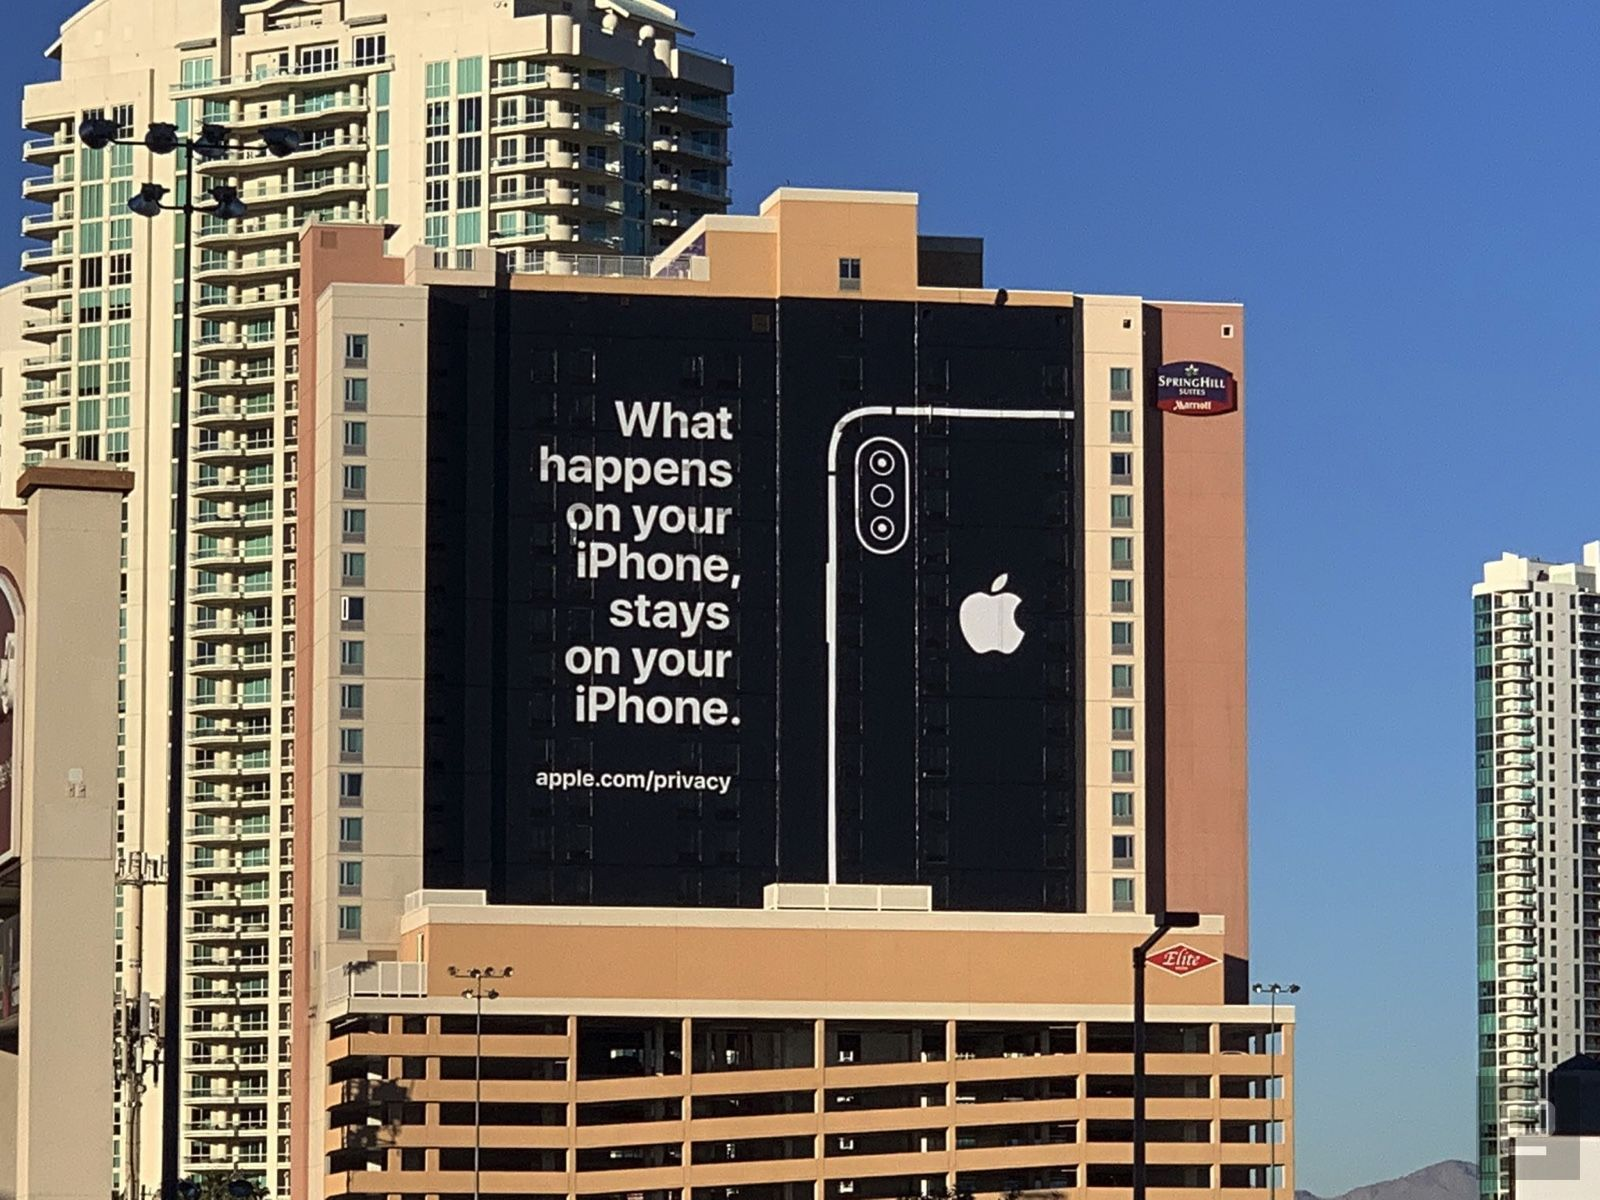 Apple trolls ces 2019 with privacy ad aimed at android and